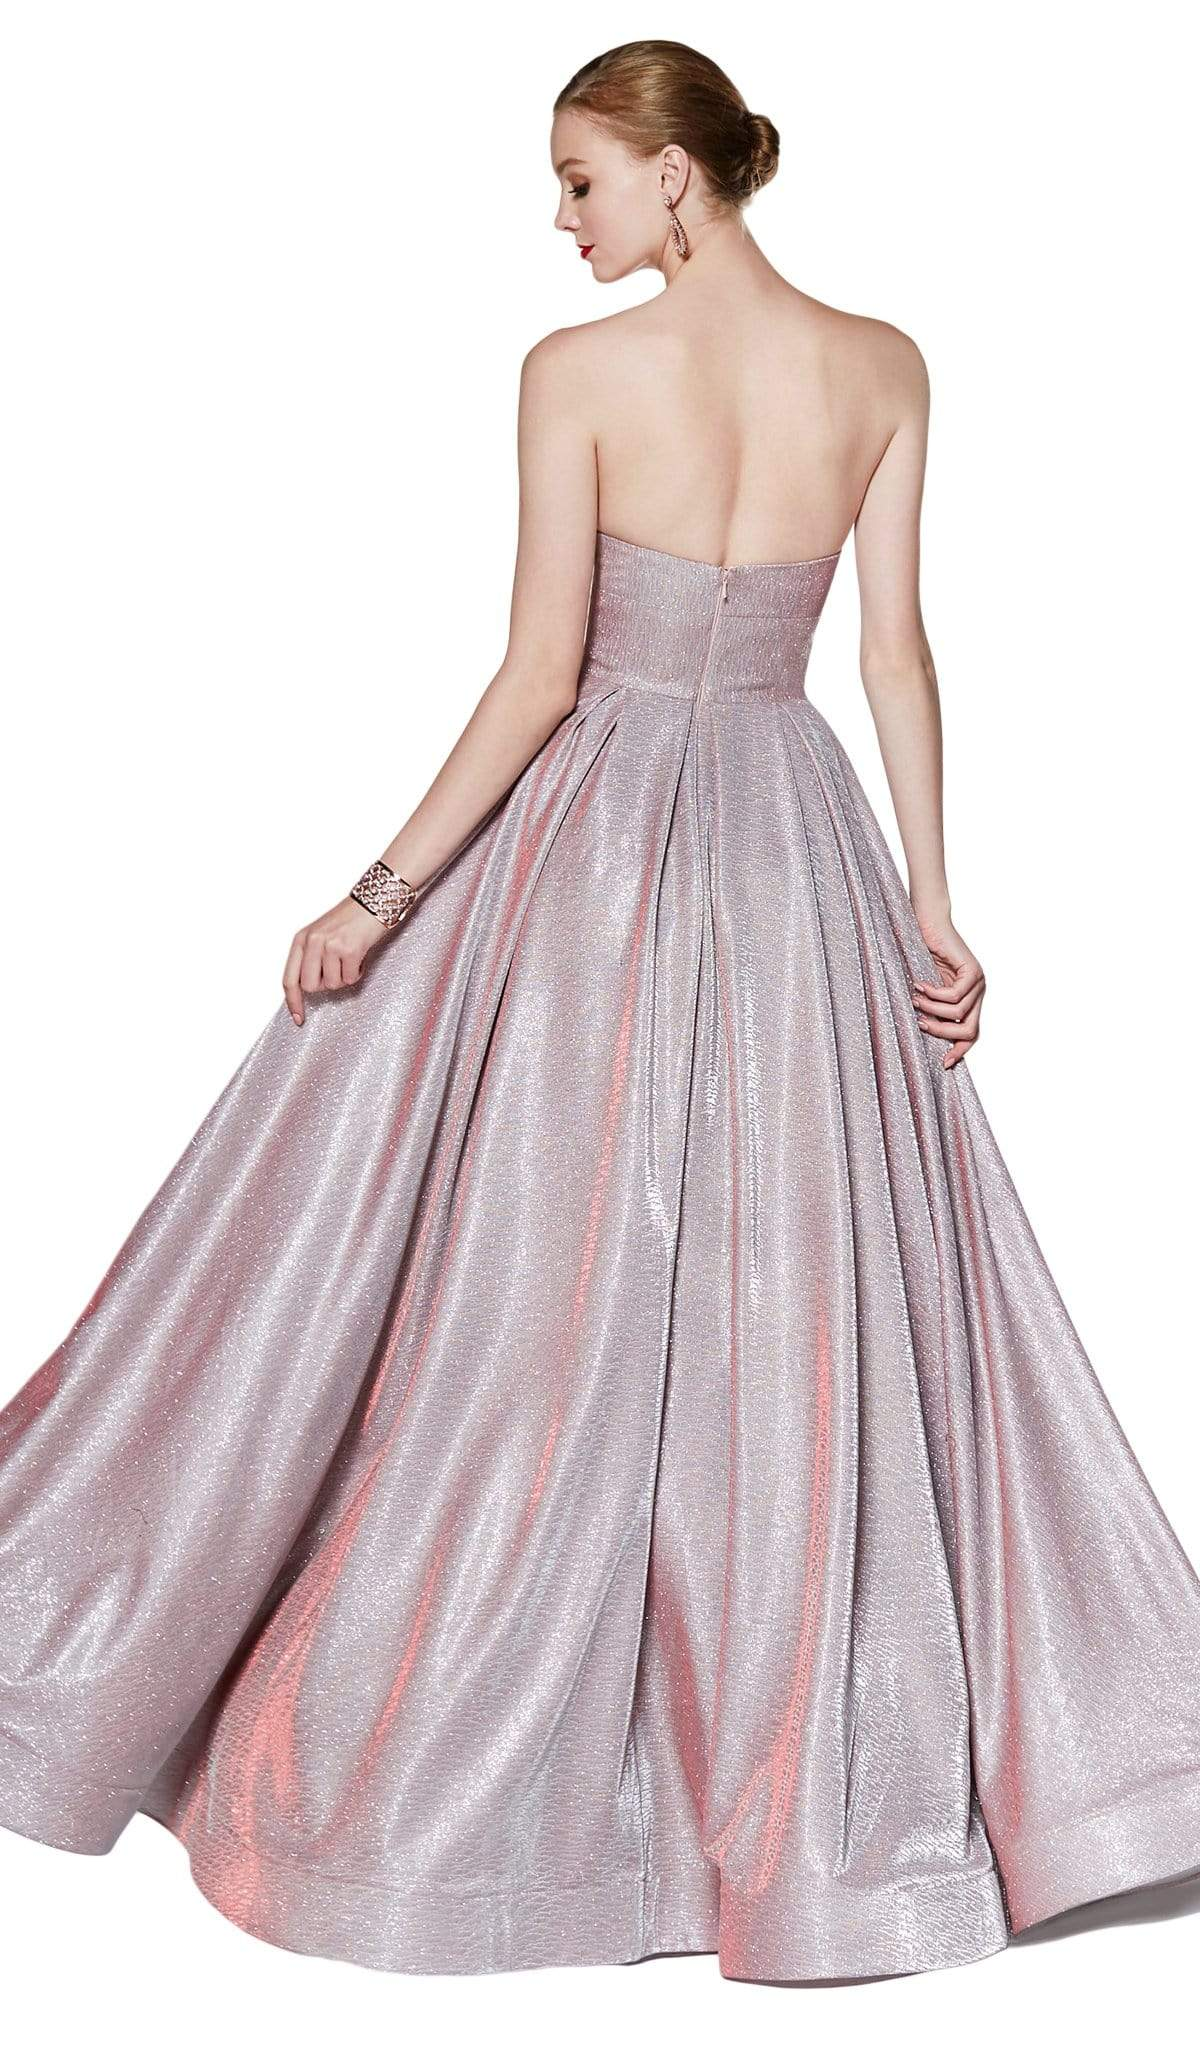 Cinderella Divine - CJ522 Glitter Sweetheart Ballgown With Slit Special Occasion Dress